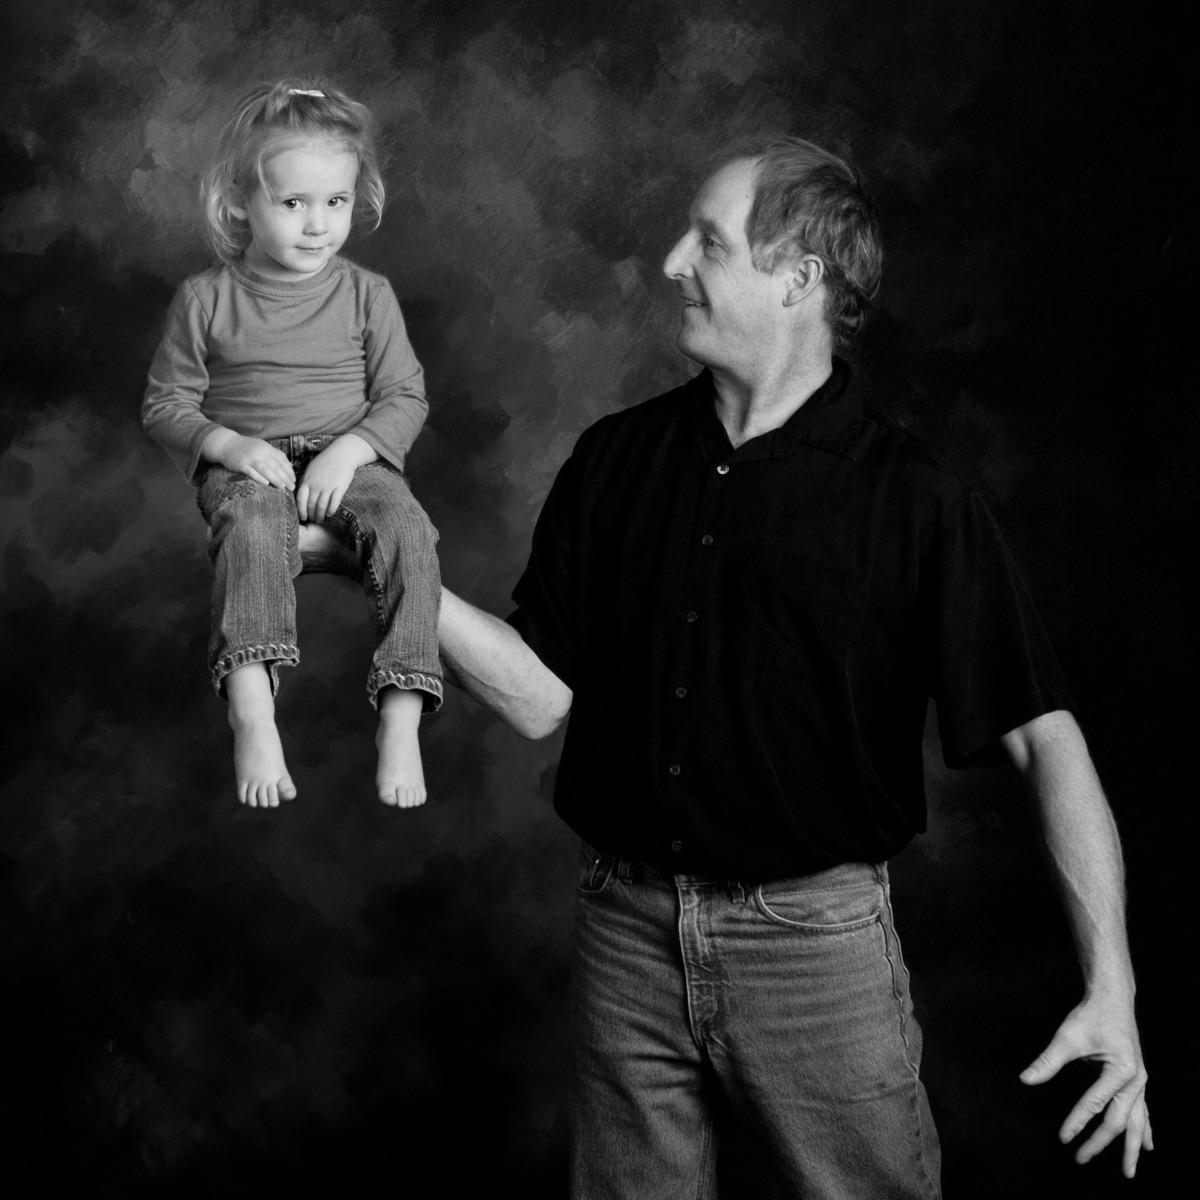 Father & Daughter Maternity Portrait Photographer in Rapid City, SD by Kevin Eilbeck